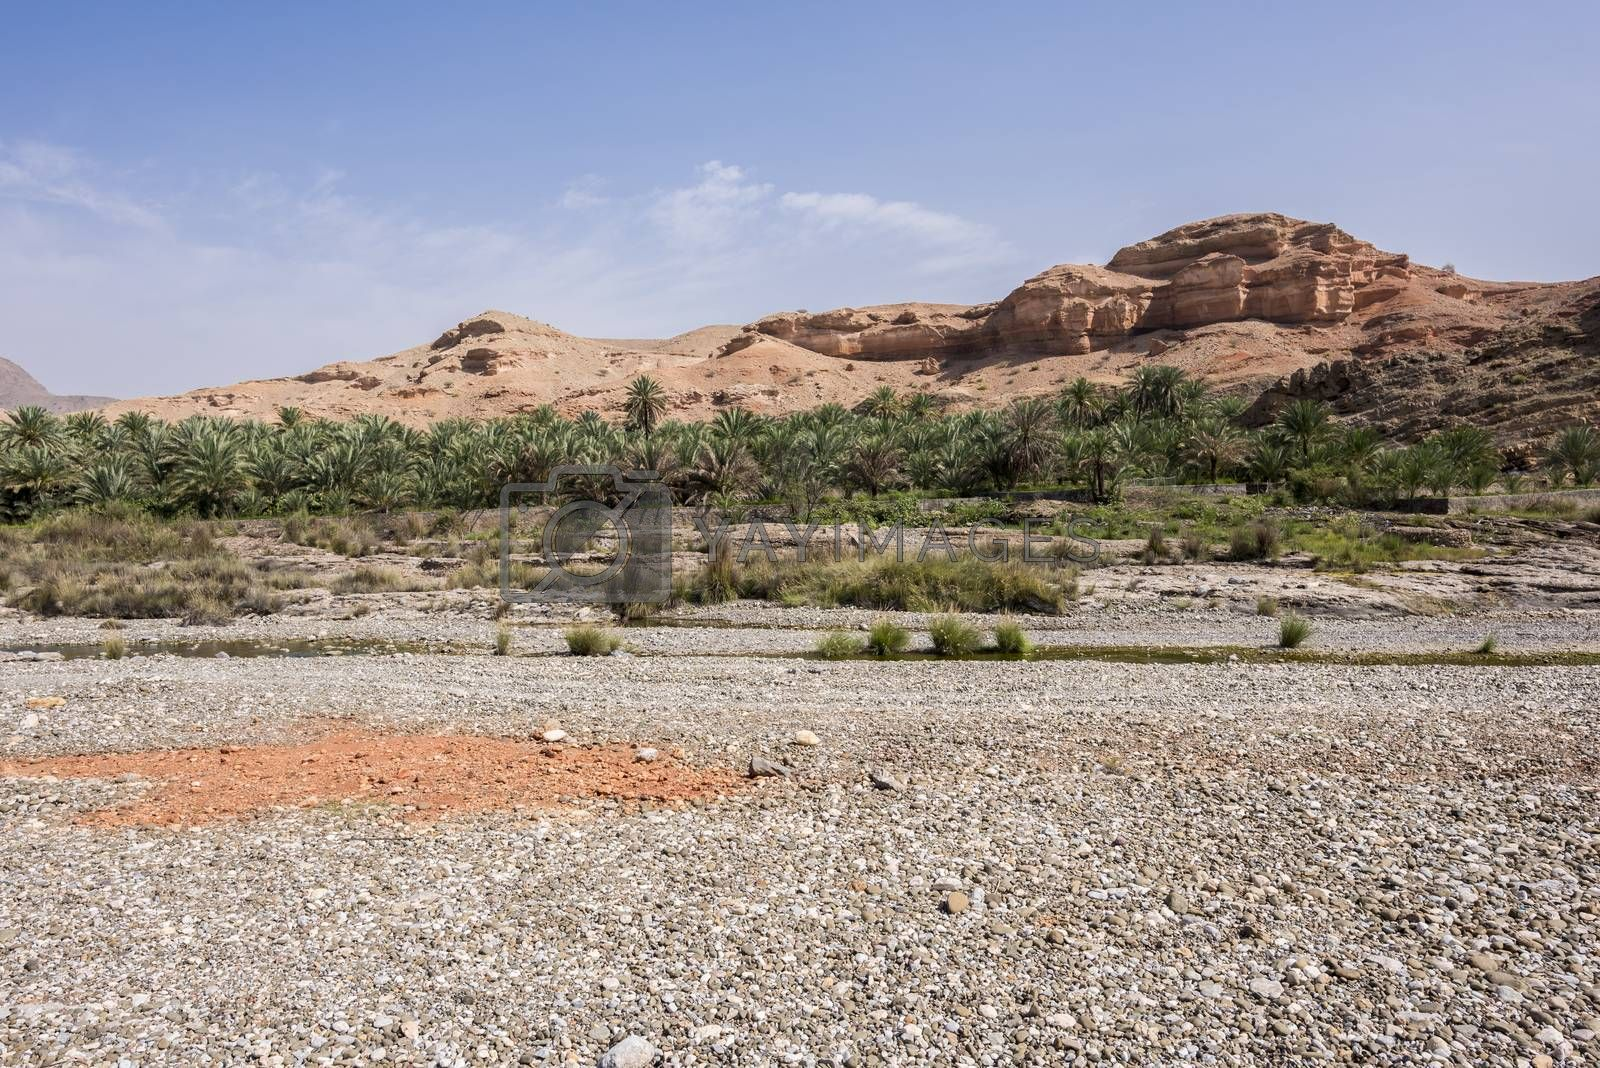 Palm groove near a river and mountain, Al Mazari (village beside Wadi Dayqah Dam), Sultanate of Oman, Middle East